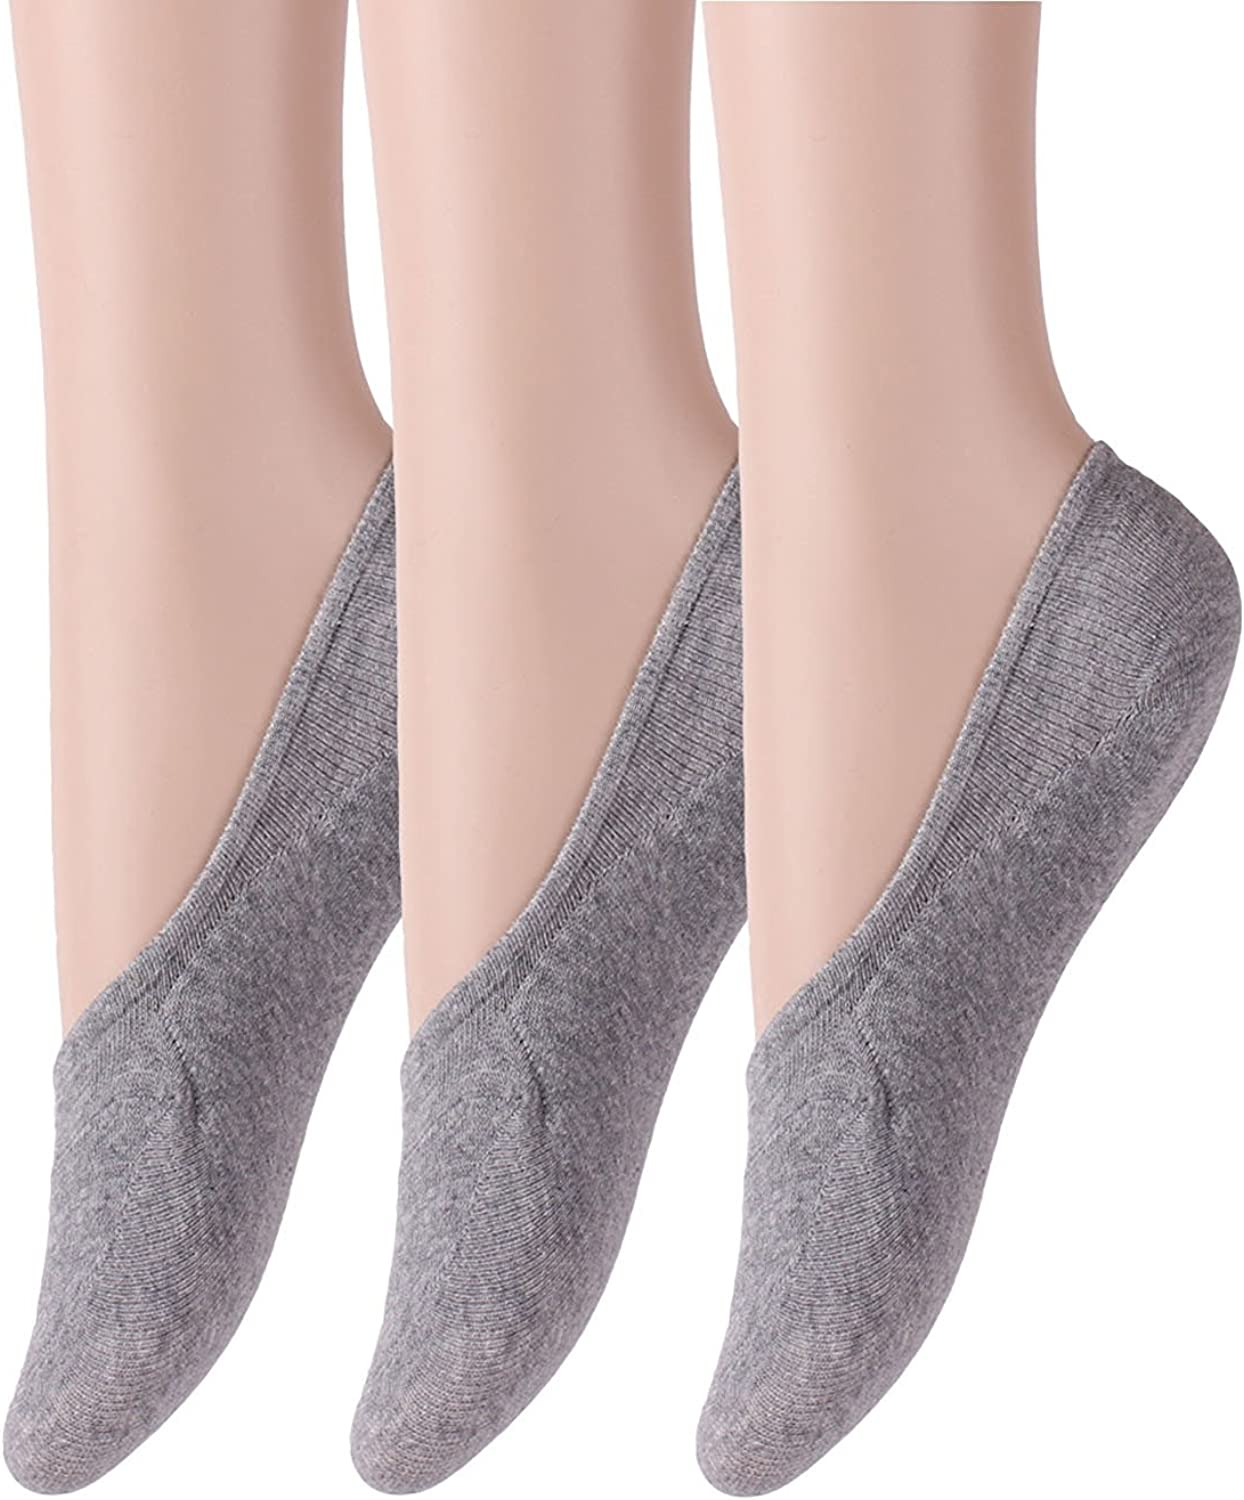 Cosynook Women's 3 or 6 pack Thin Casual No Show Socks Non Slip Flat Boat Line